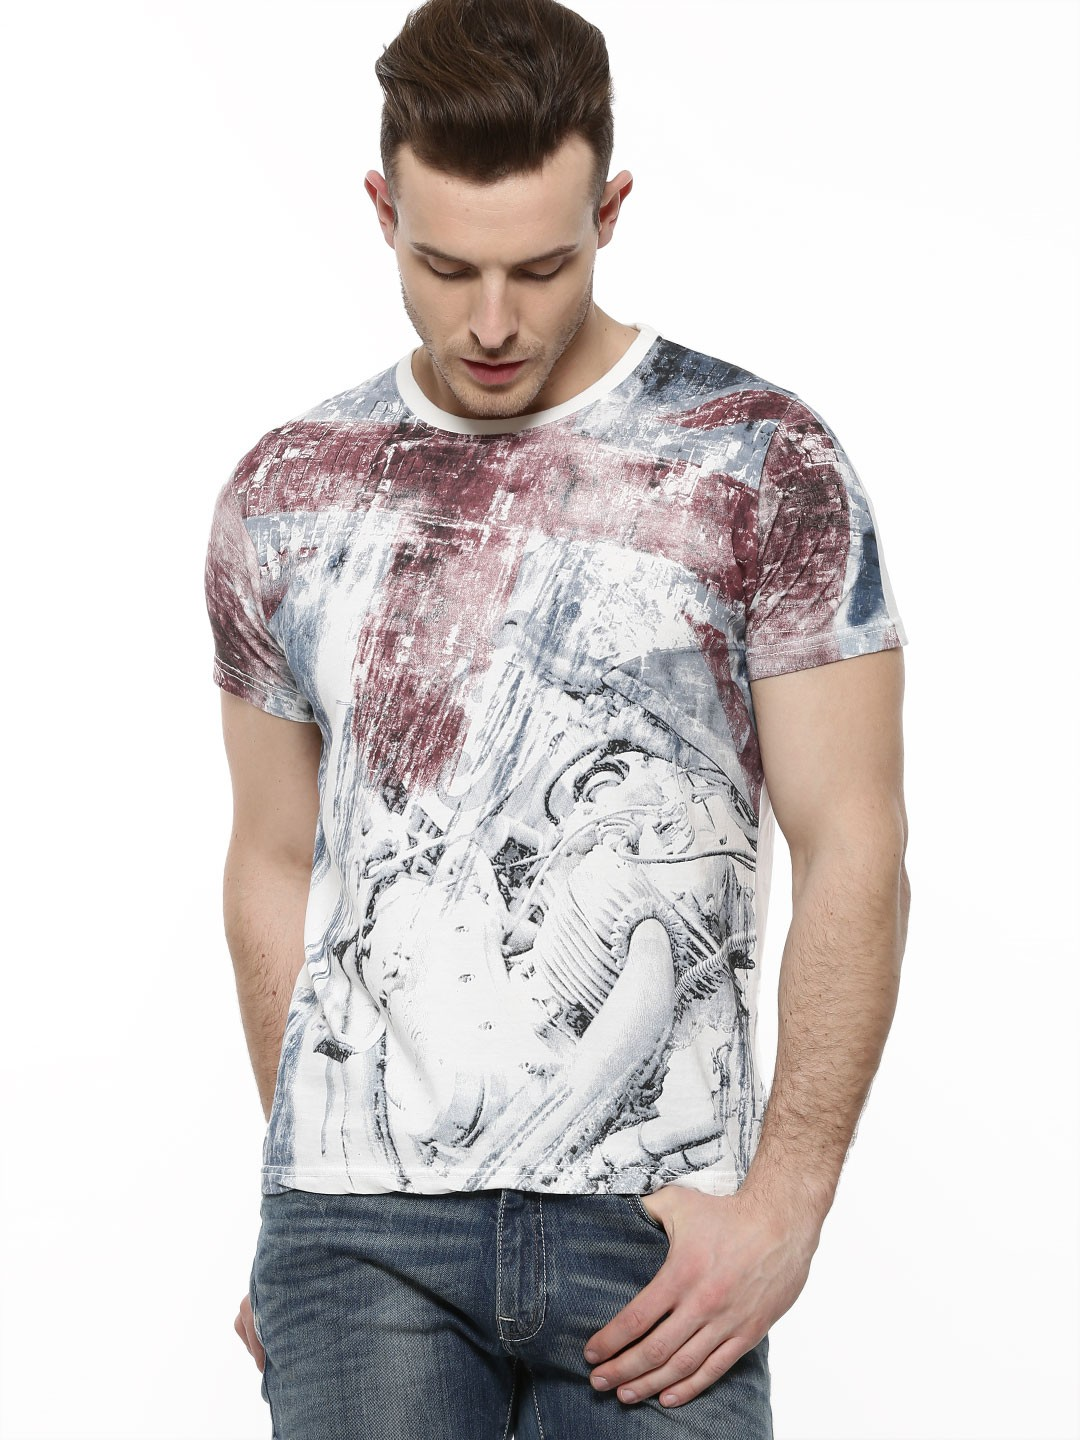 Buy T-Shirt For Men Online In India. Large Collection of Printed T-Shirts & Polo T-shirts for Men at Basics. free shipping* Cash on Delivery* 30 days Return. - anthonyevans.tk